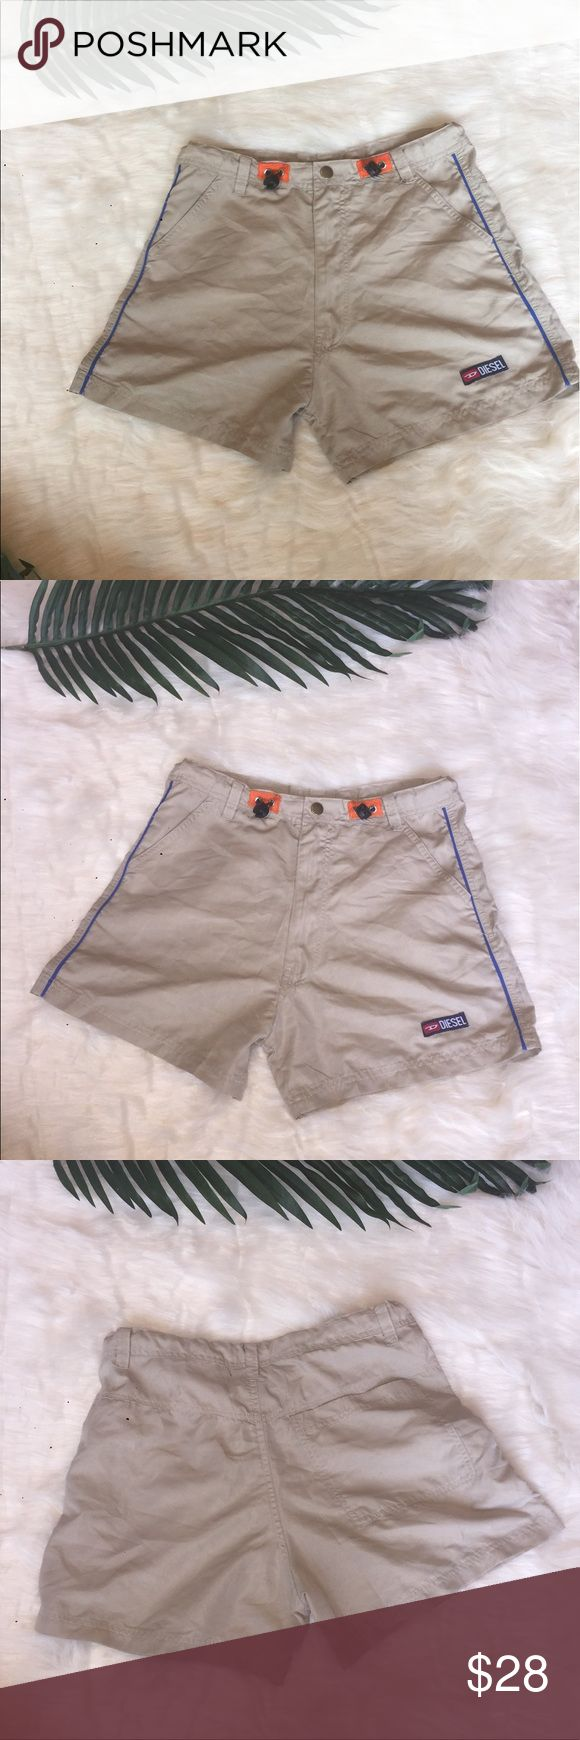 Diesel tan shorts Khaki color Diesel shorts. Adjustable waist. Size small. These are board short type material. Diesel Shorts